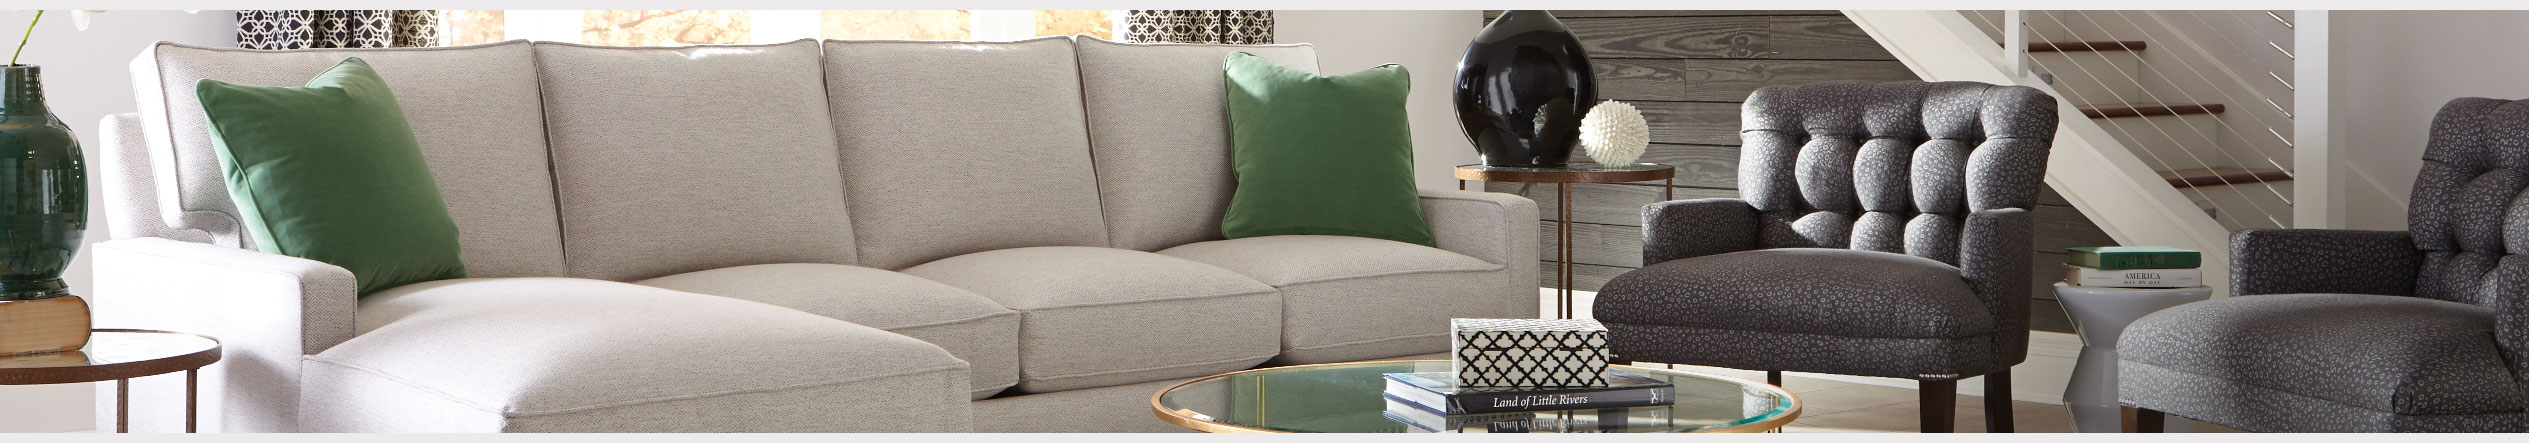 Shop By Collection at Jordan's Furniture stores in CT, MA, NH, and RI